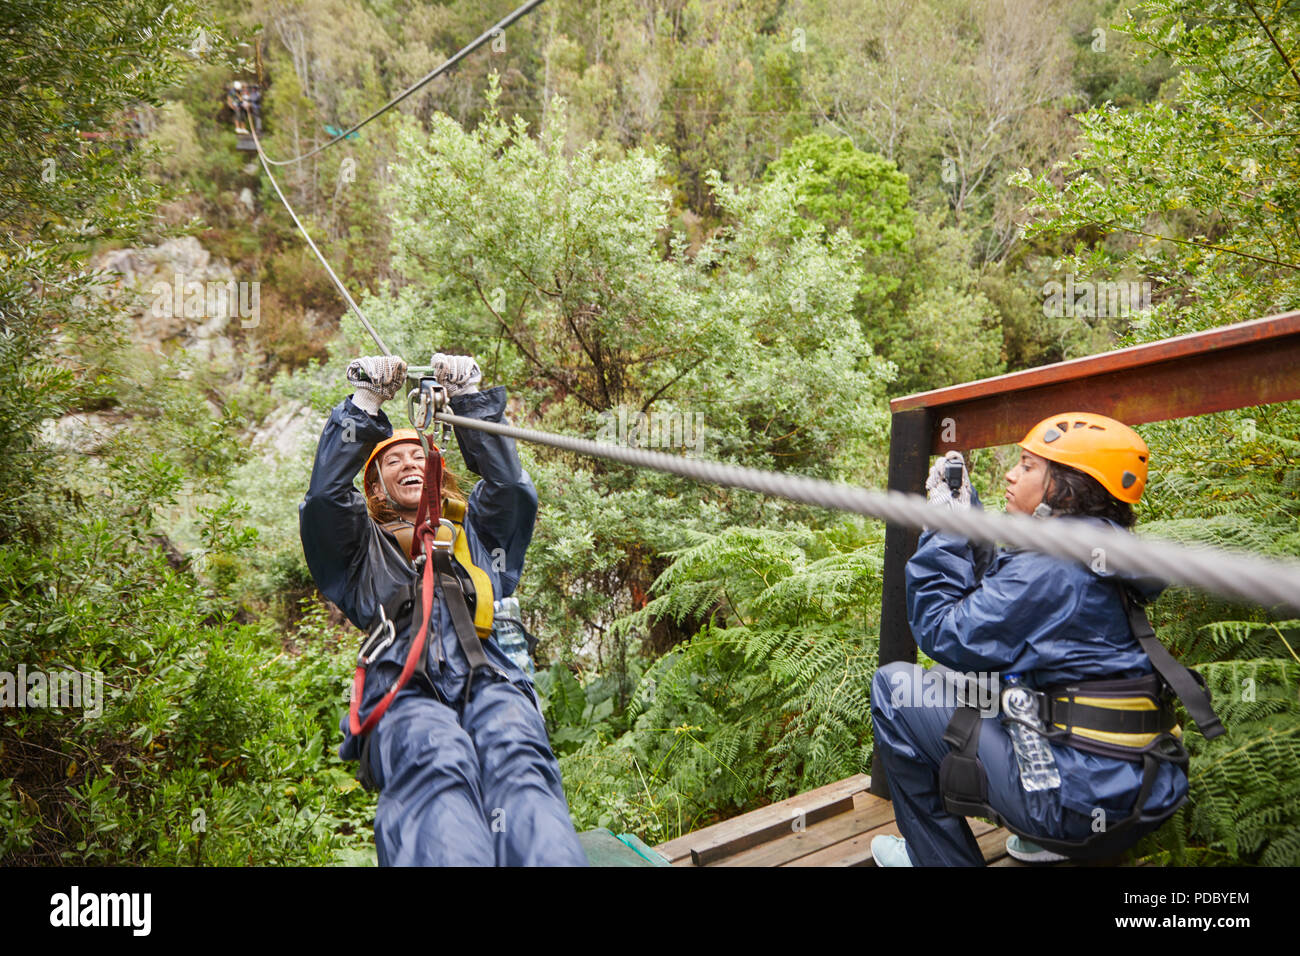 Woman zip lining above trees - Stock Image